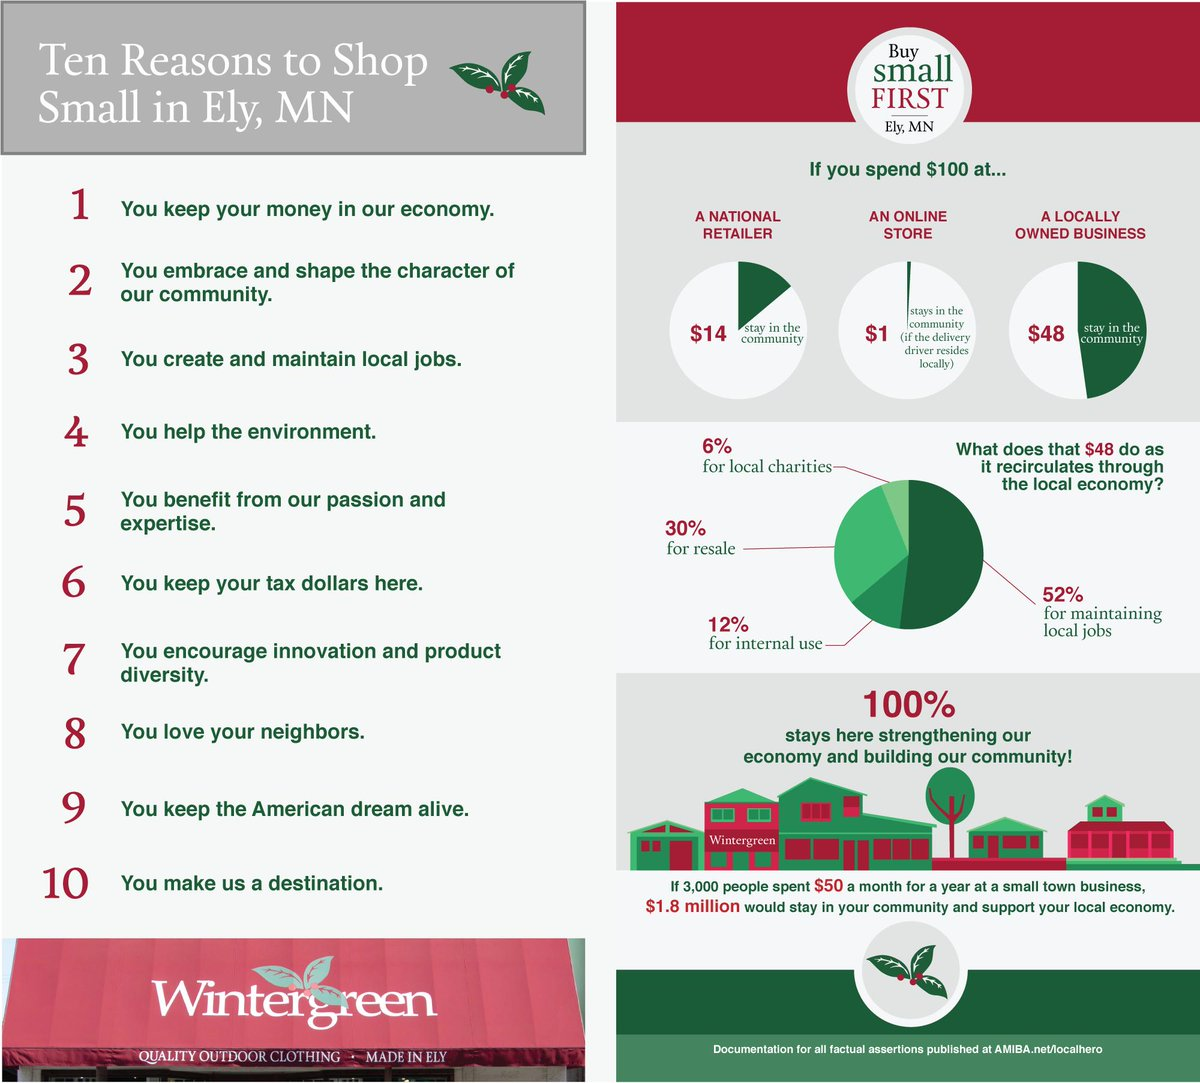 Small businesses and communities value local support! We've put together this handy infographic to show how important it is to shop small in your community. What are some of your favorite local stores? #shopLocal #shopSmall #wearMNmade<br>http://pic.twitter.com/ms4Q50kOep